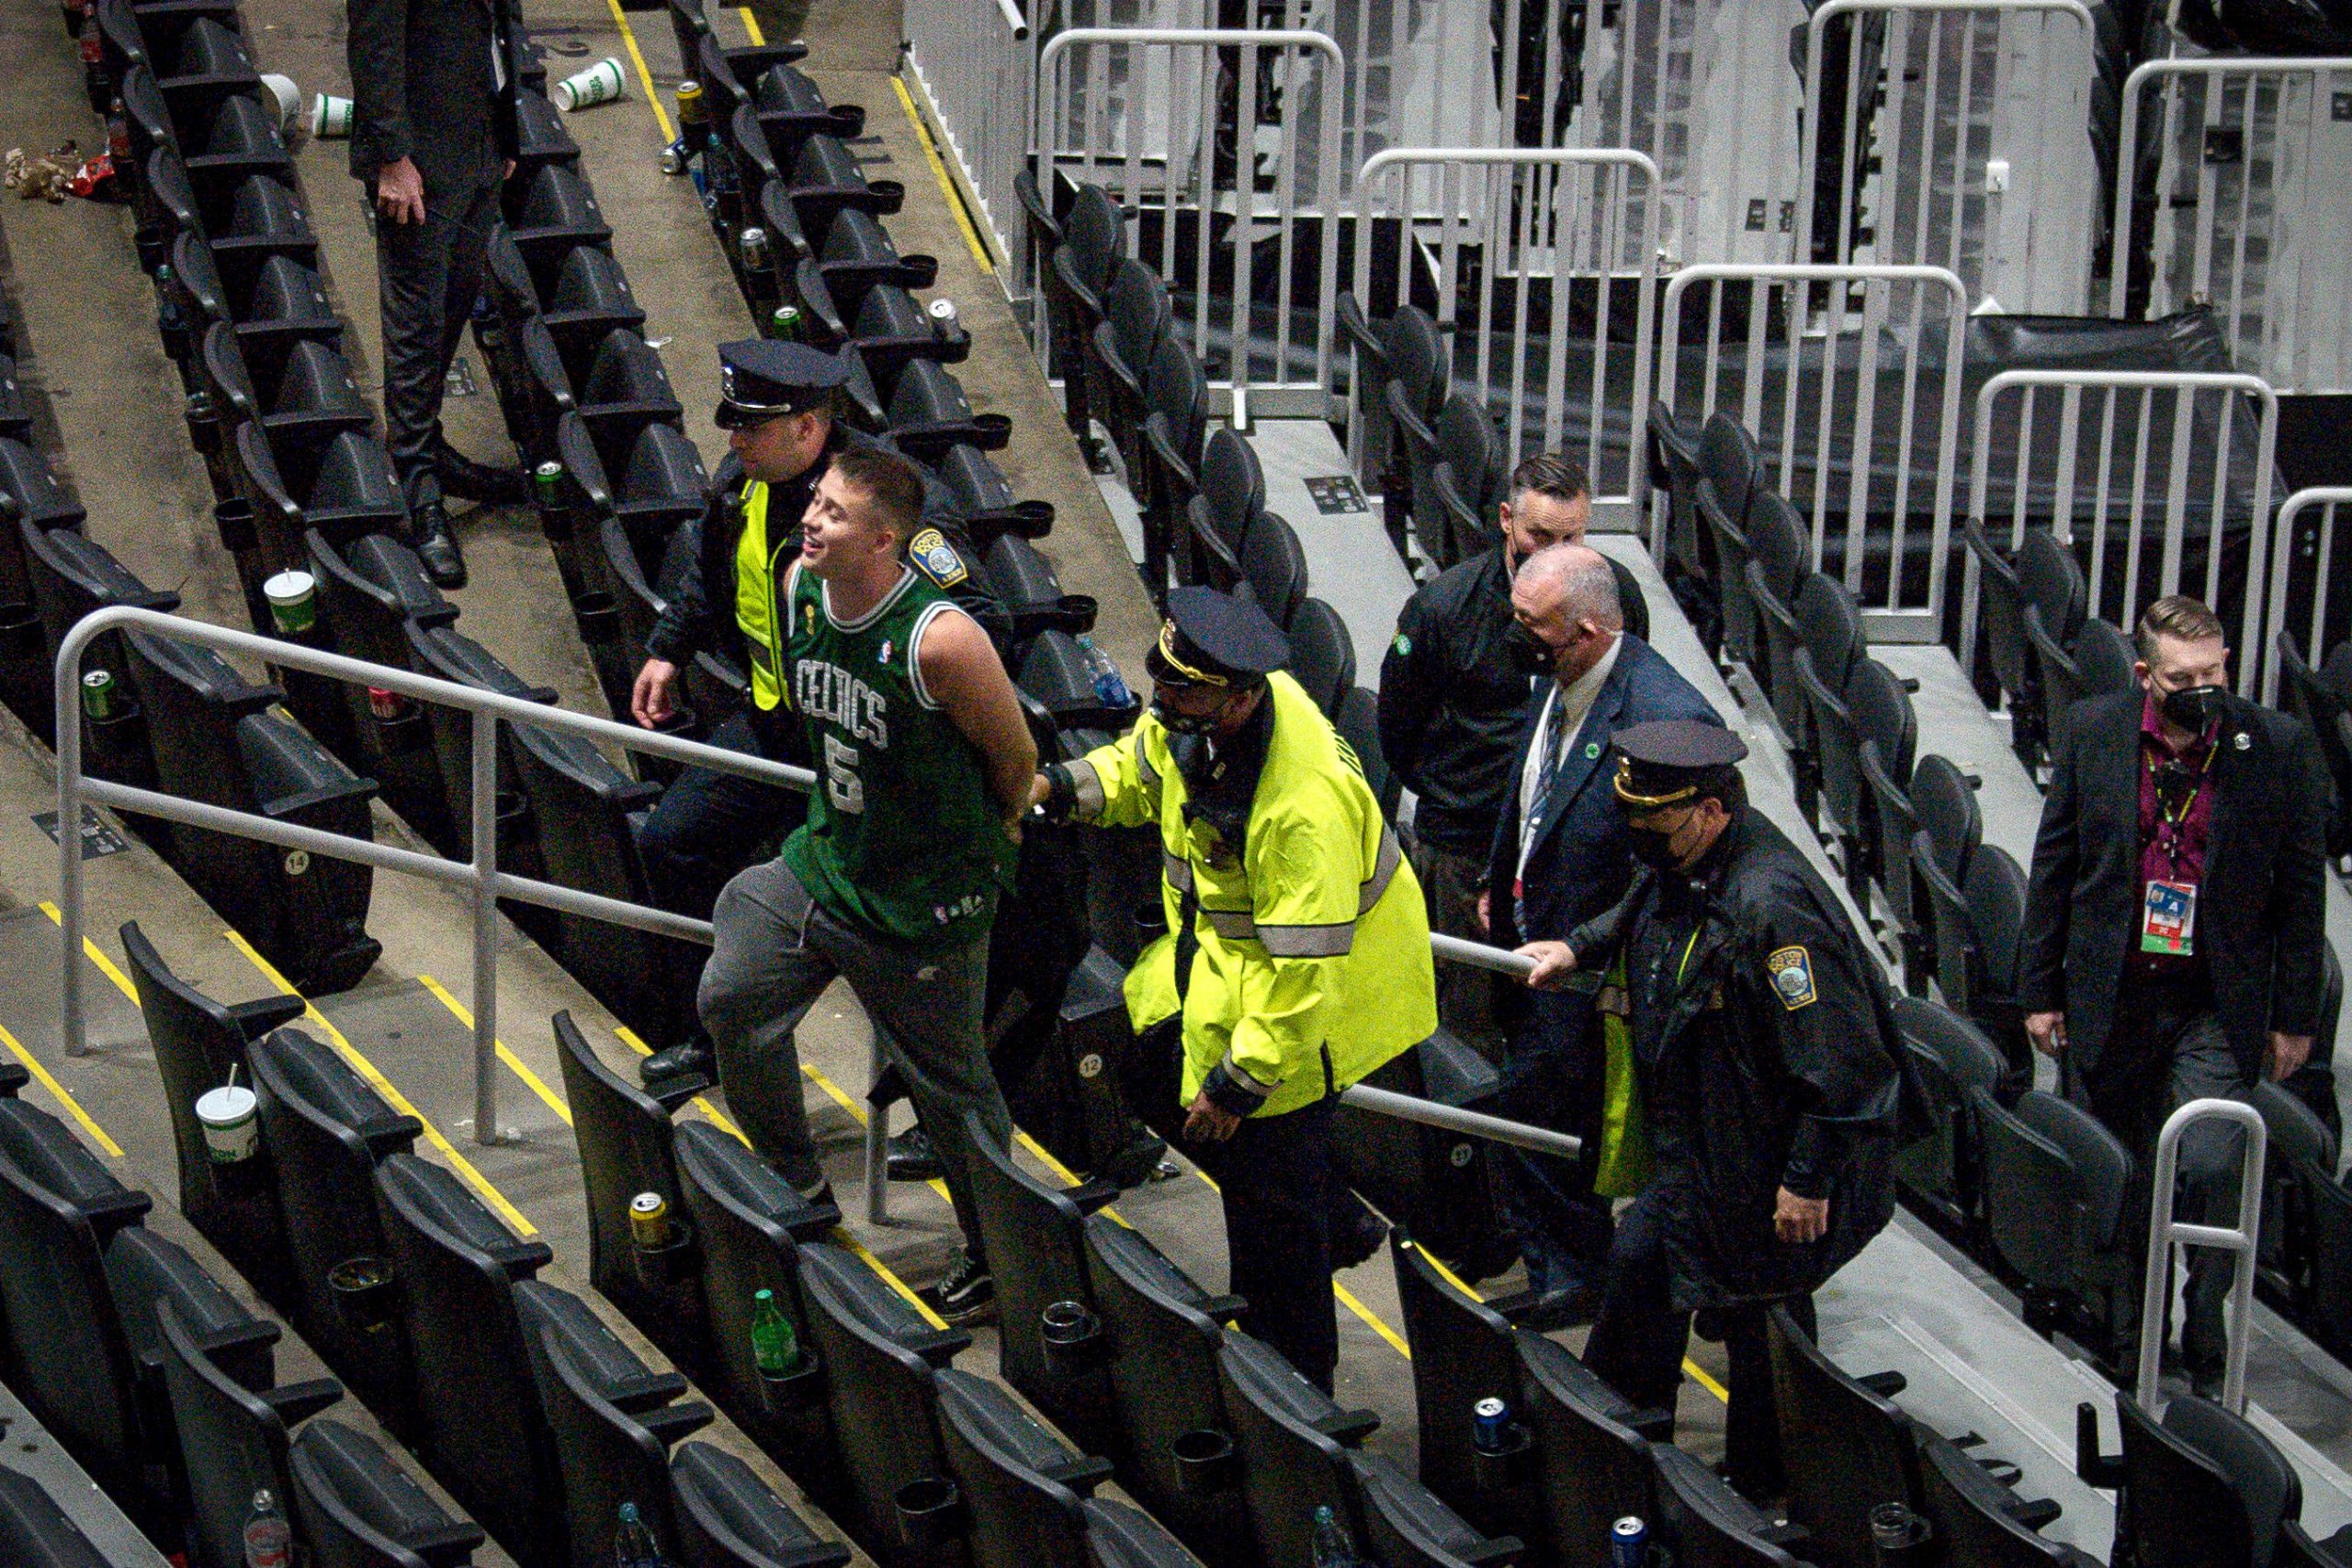 As America reopens, businesses — from airlines to arenas — see an uptick in bad behavior